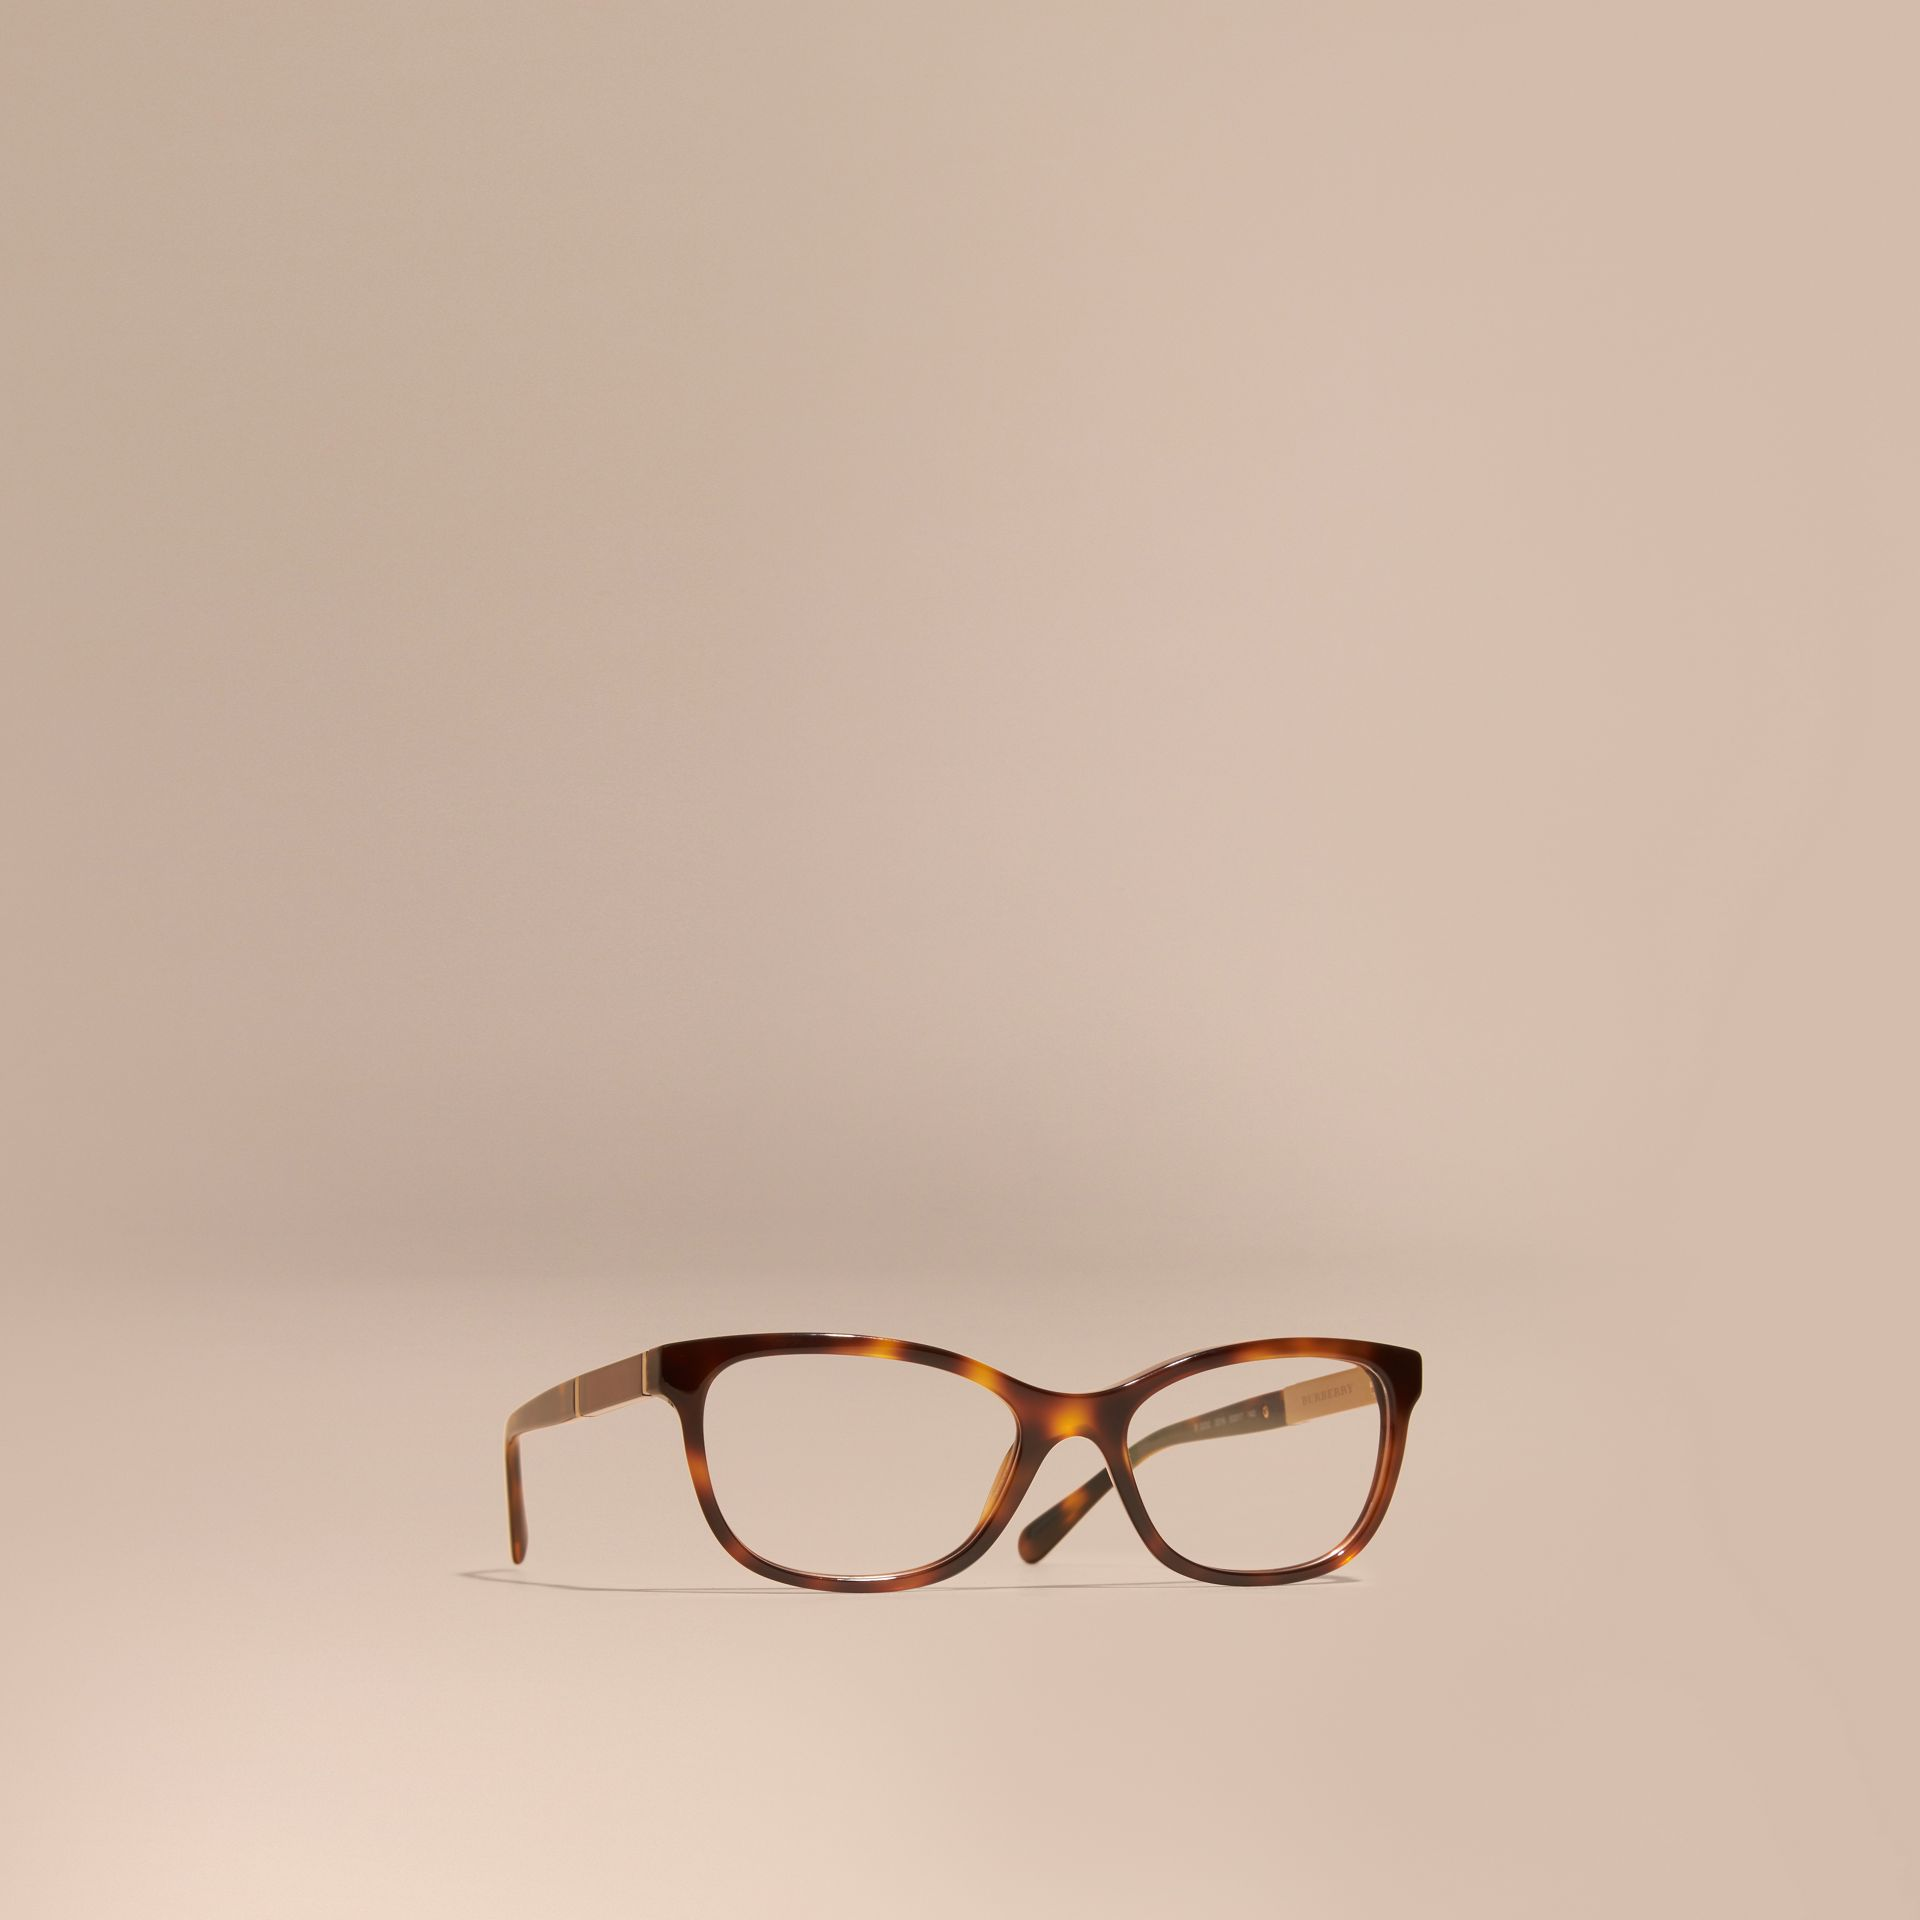 Check Detail Oval Optical Frames Light Russet Brown - gallery image 1